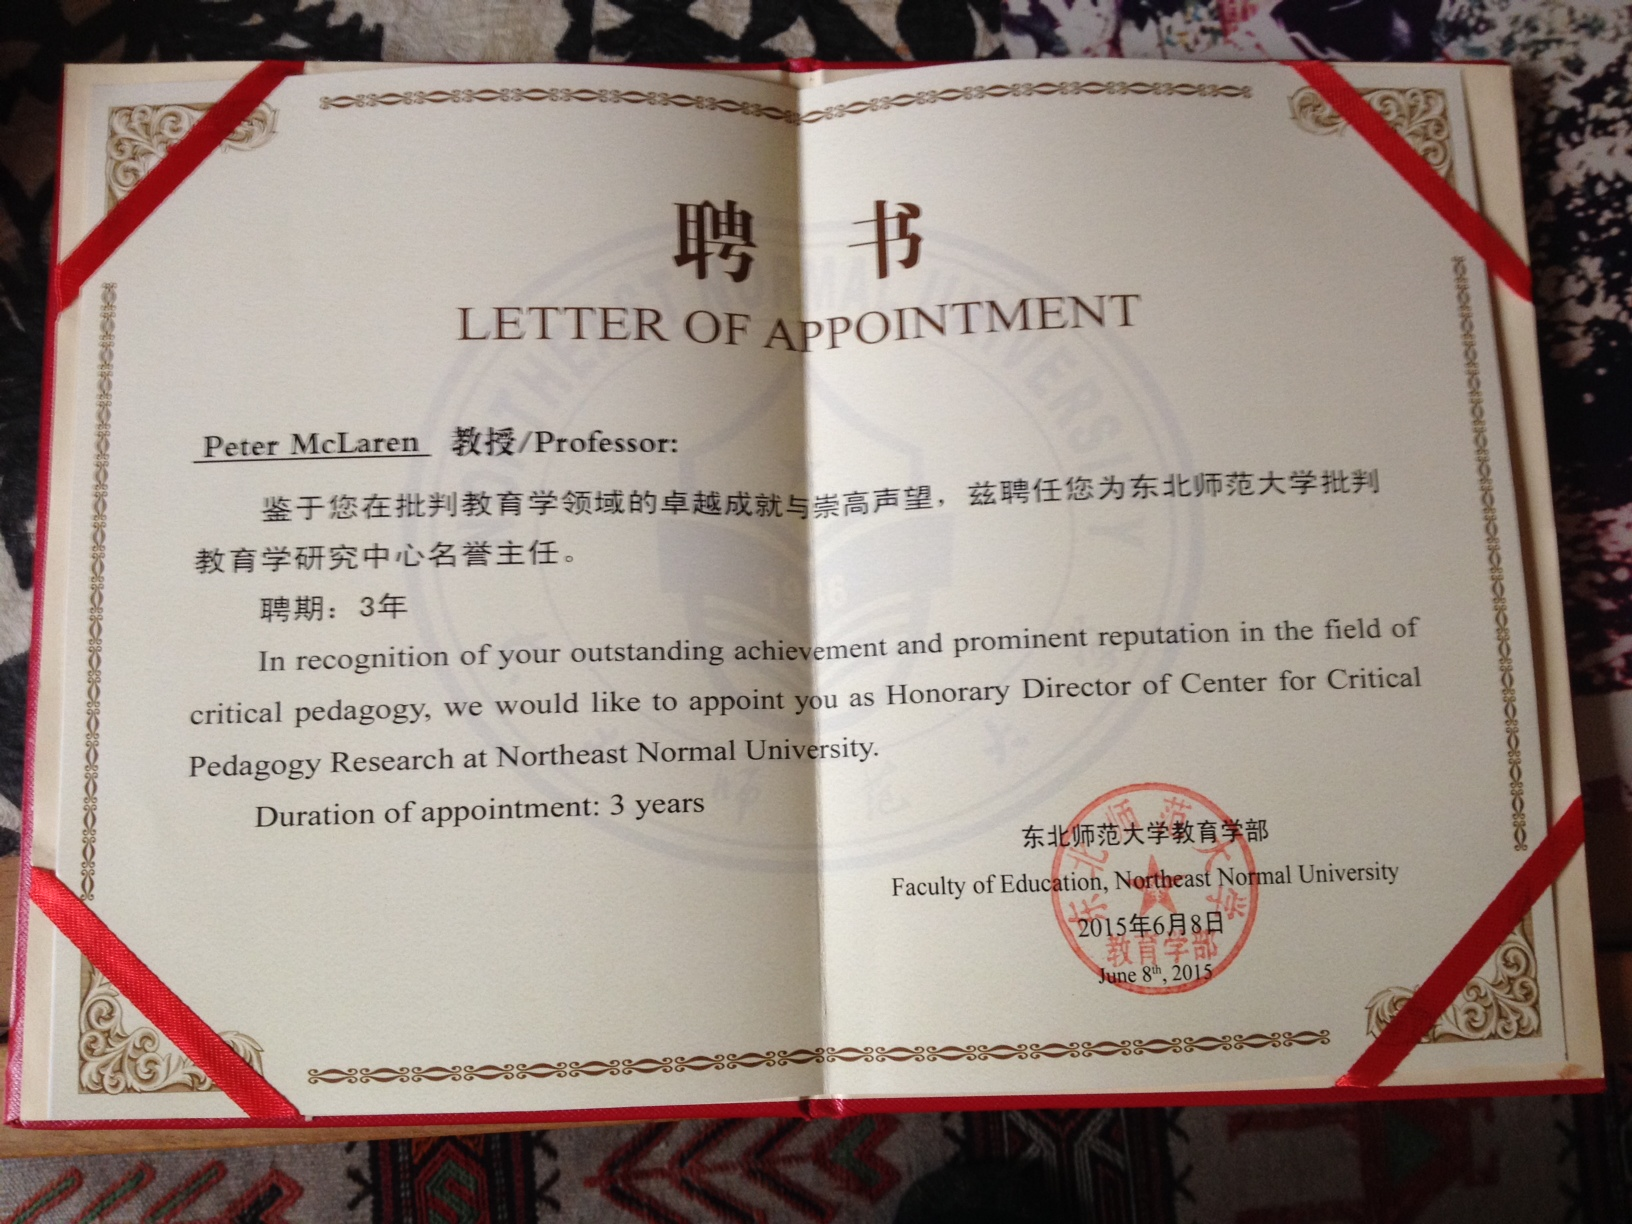 Letter of Appointment - Honorary Directorship of the Center for Critical Pedagogy Research at Northeast Normal University